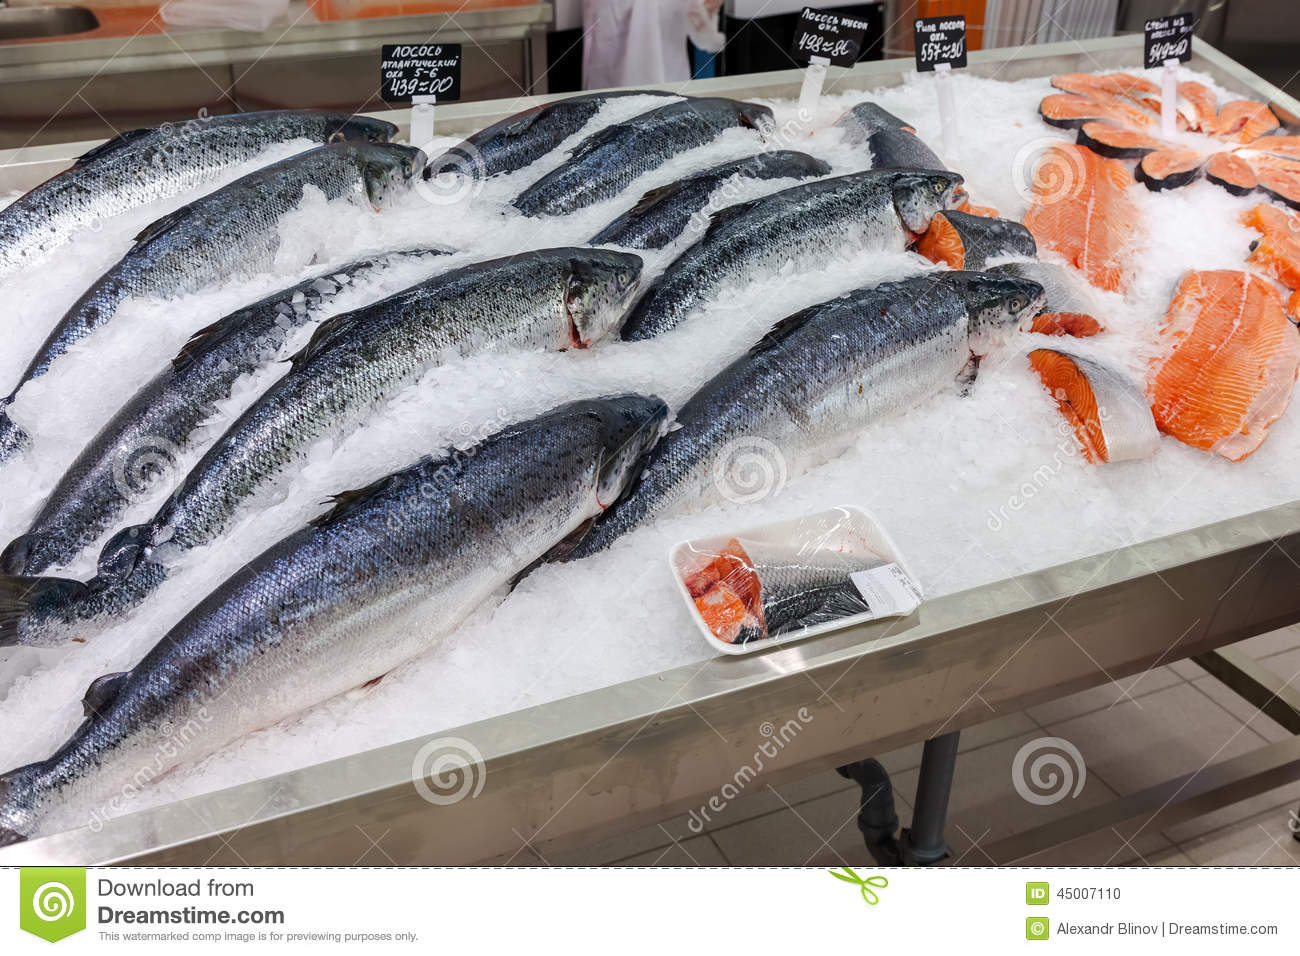 Raw fish in ice ready for sale at the supermarket